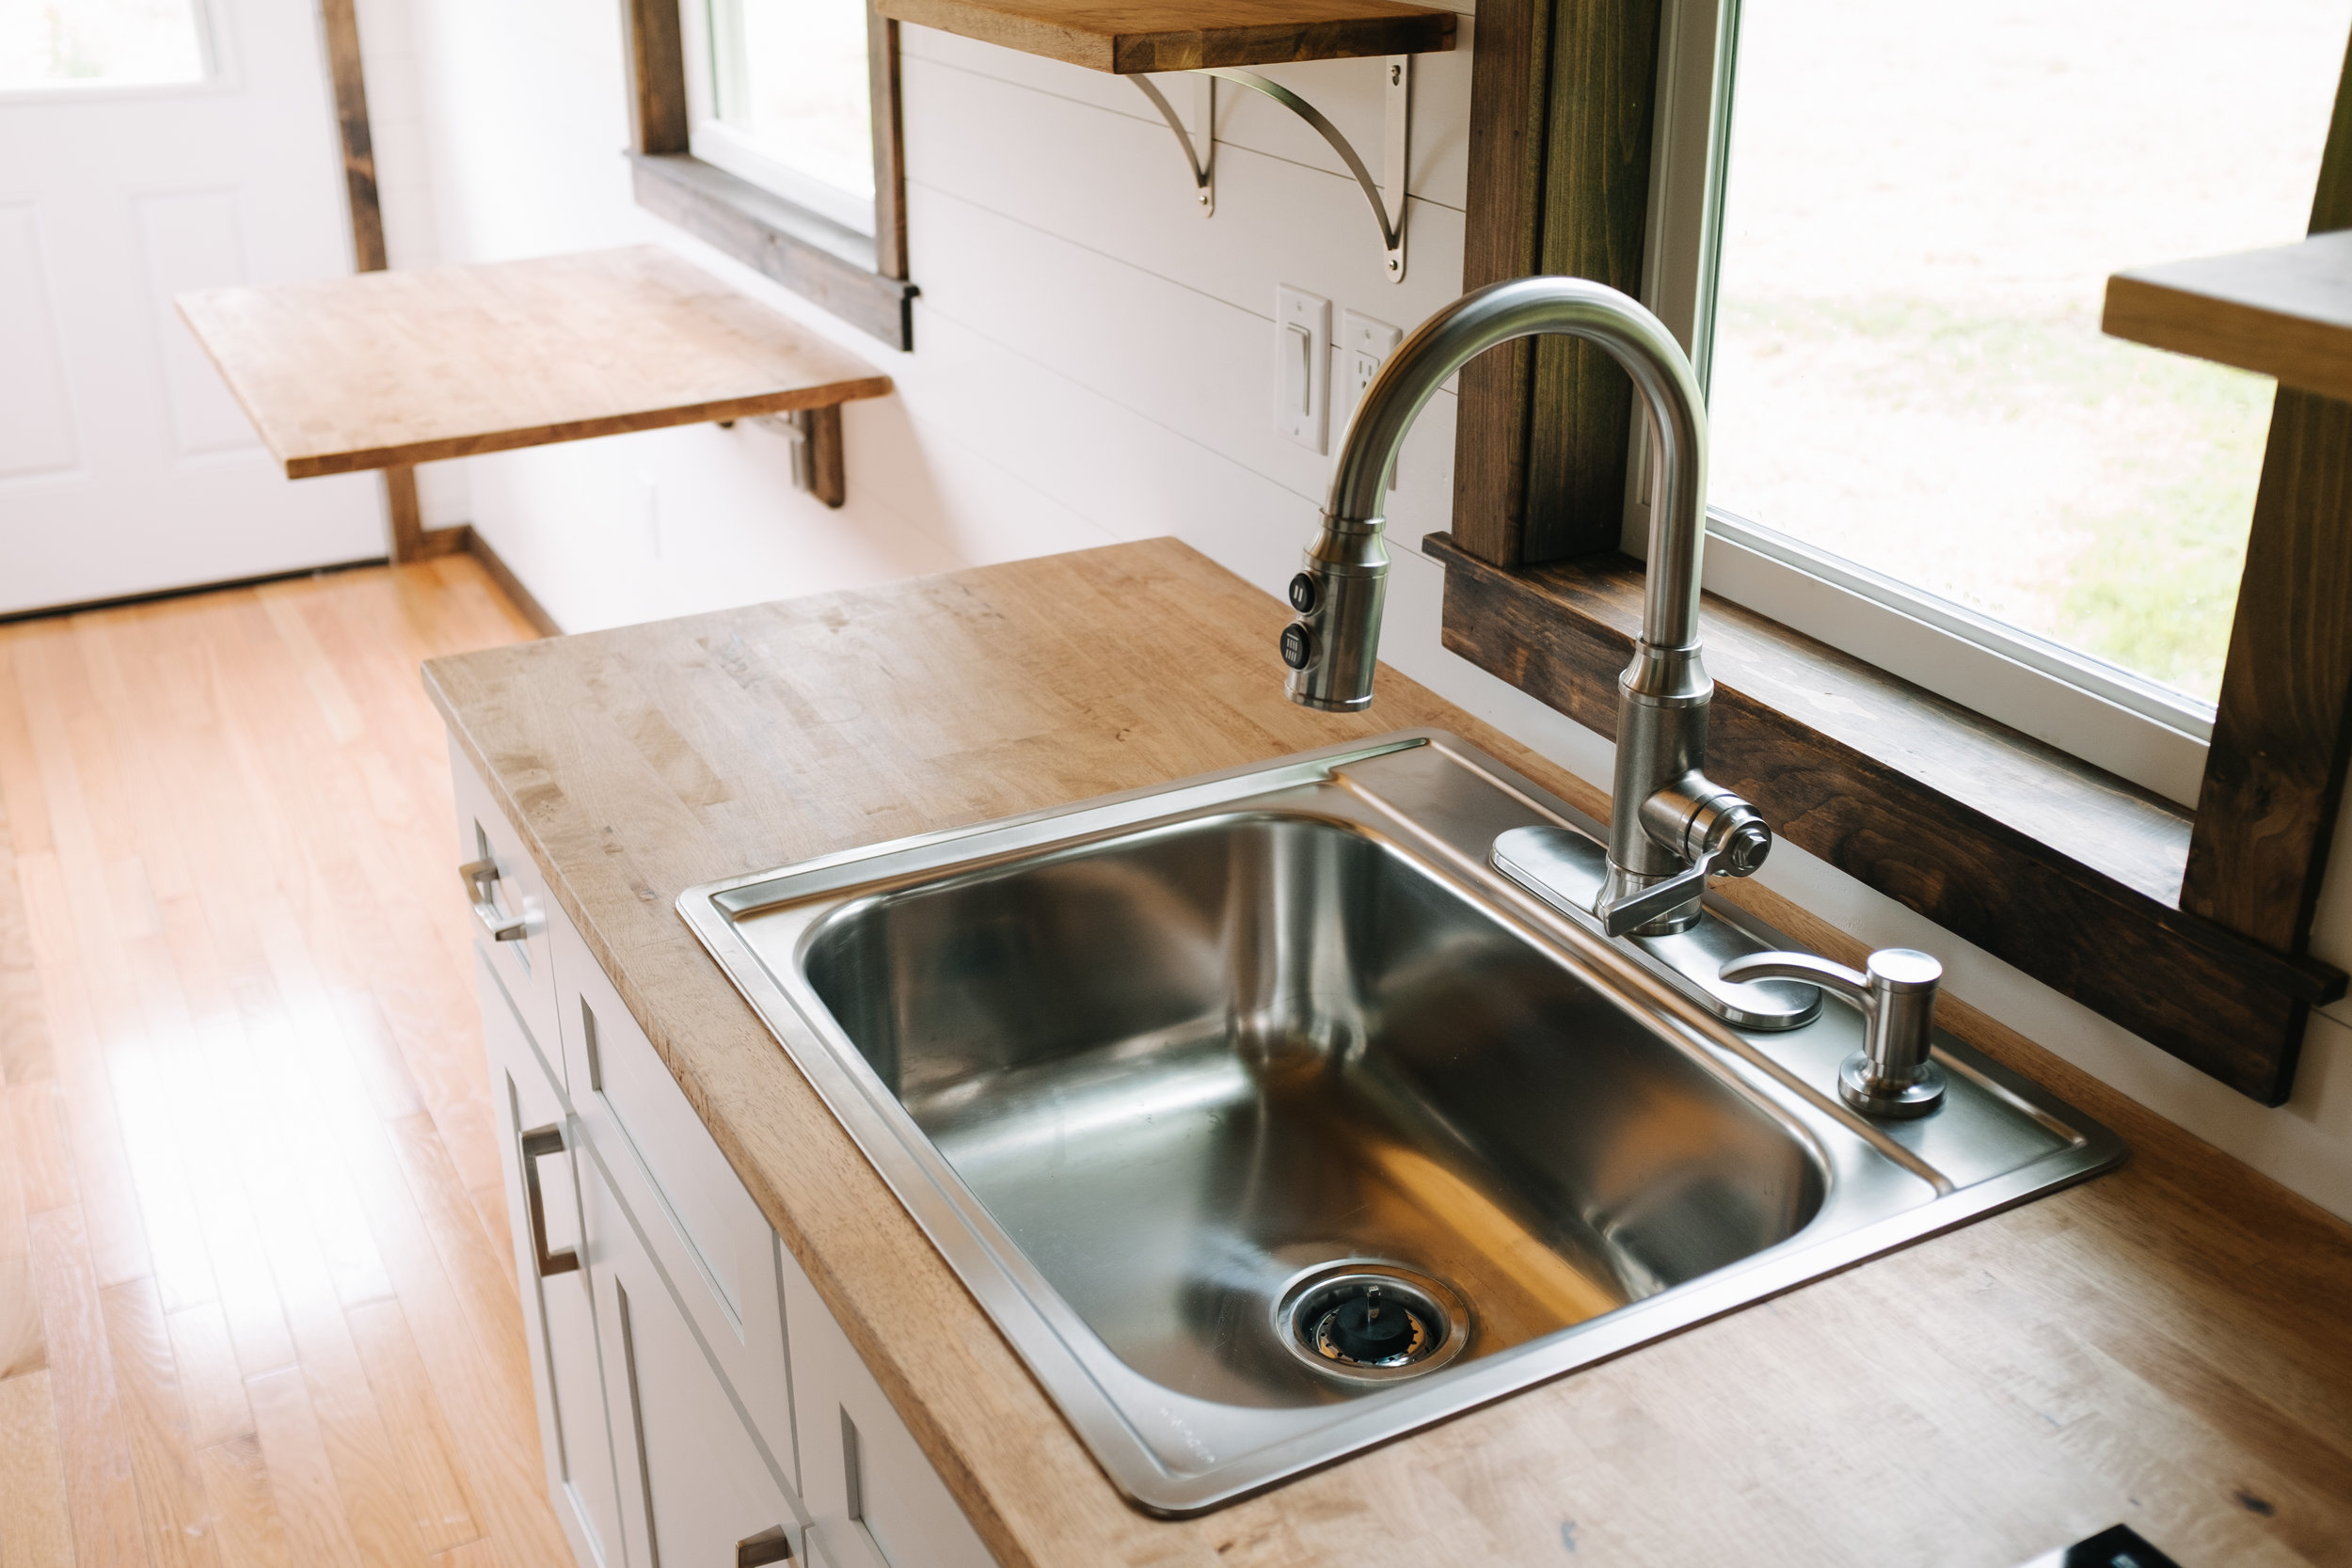 The Acadia by Wind River Tiny Homes - tiny house, butcher block counter top, Summit stove top, custom spice rack, stainless kitchen sink